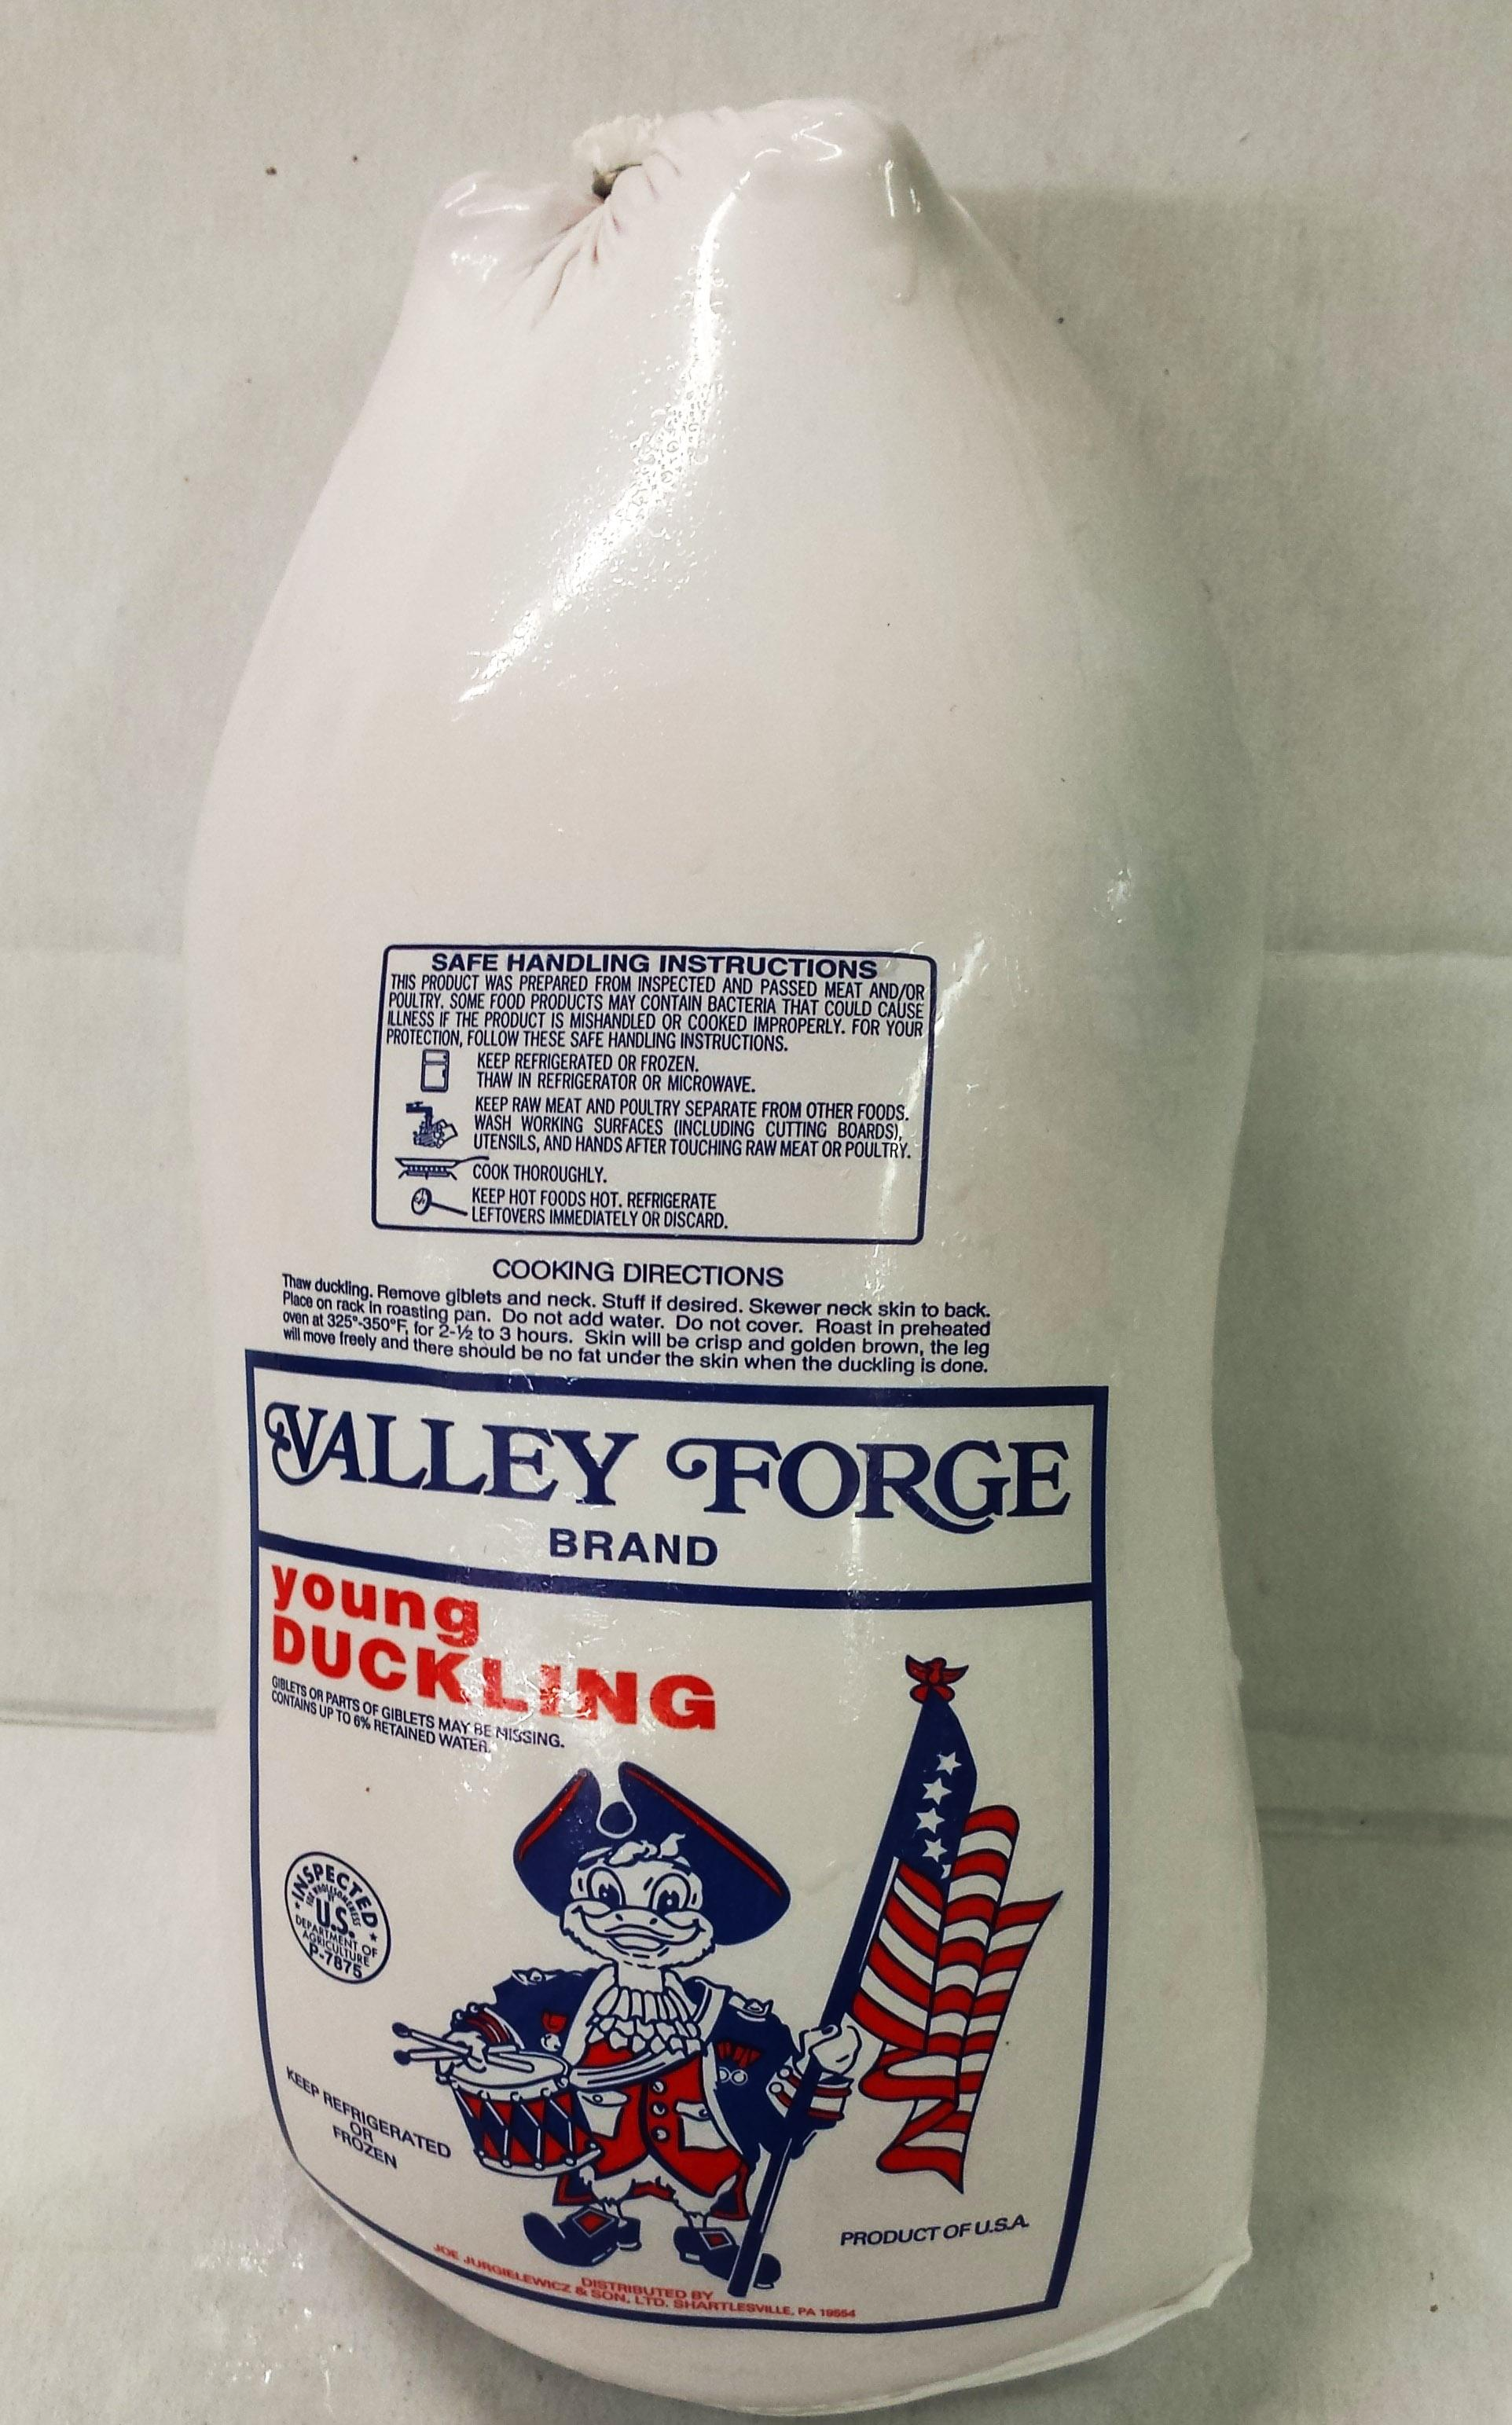 Valley Forge Brand Duckling.jpg